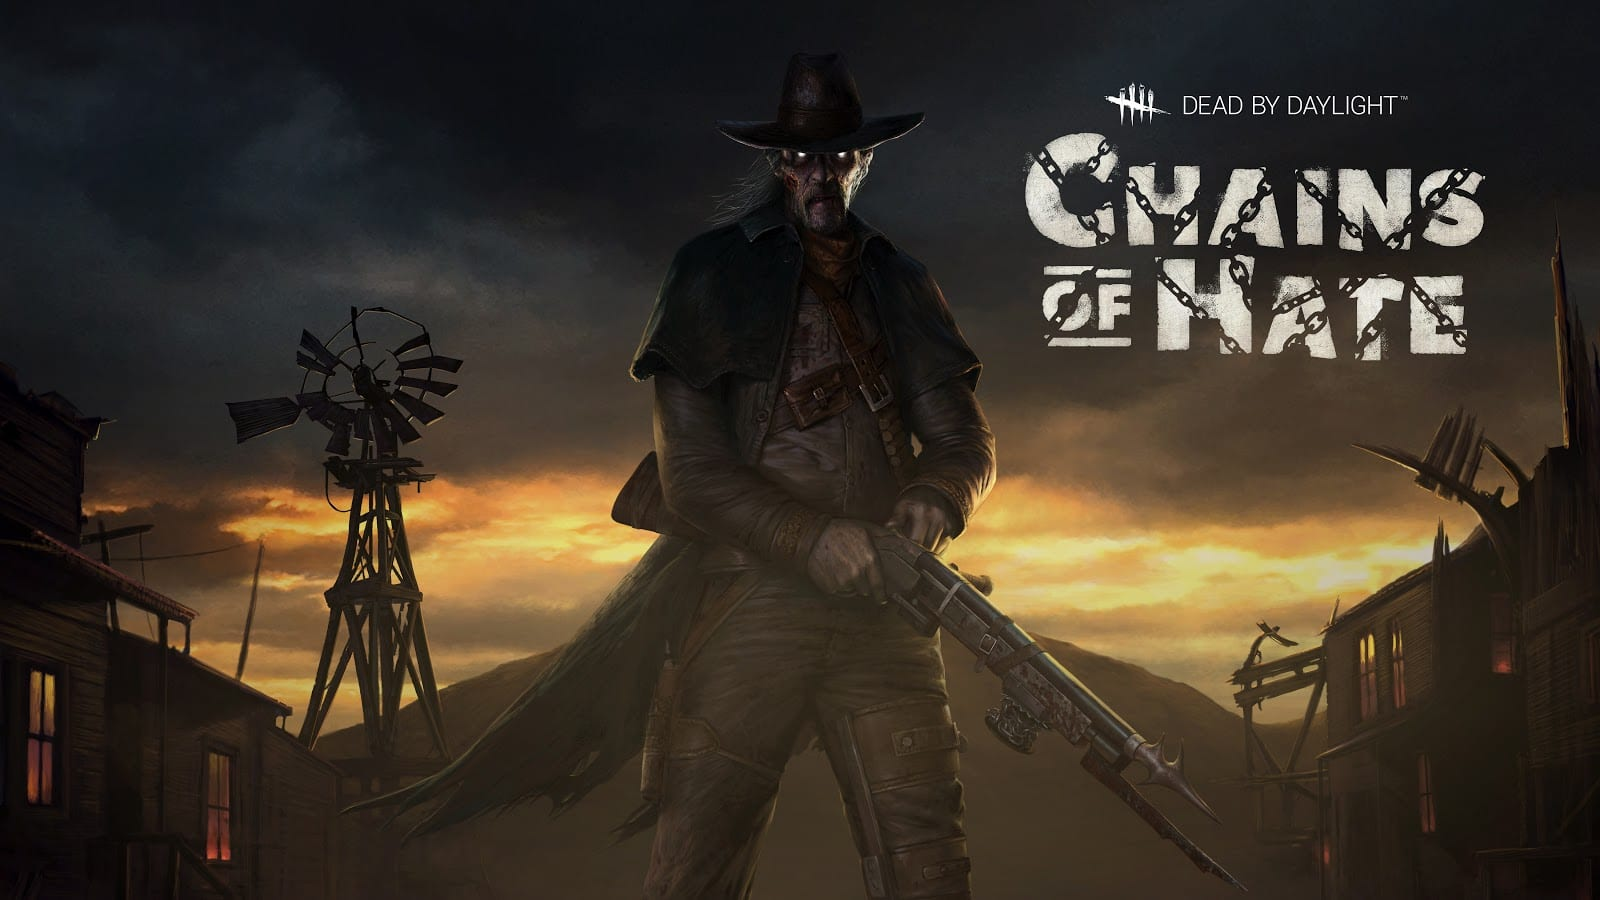 dead by daylight, chains of hate